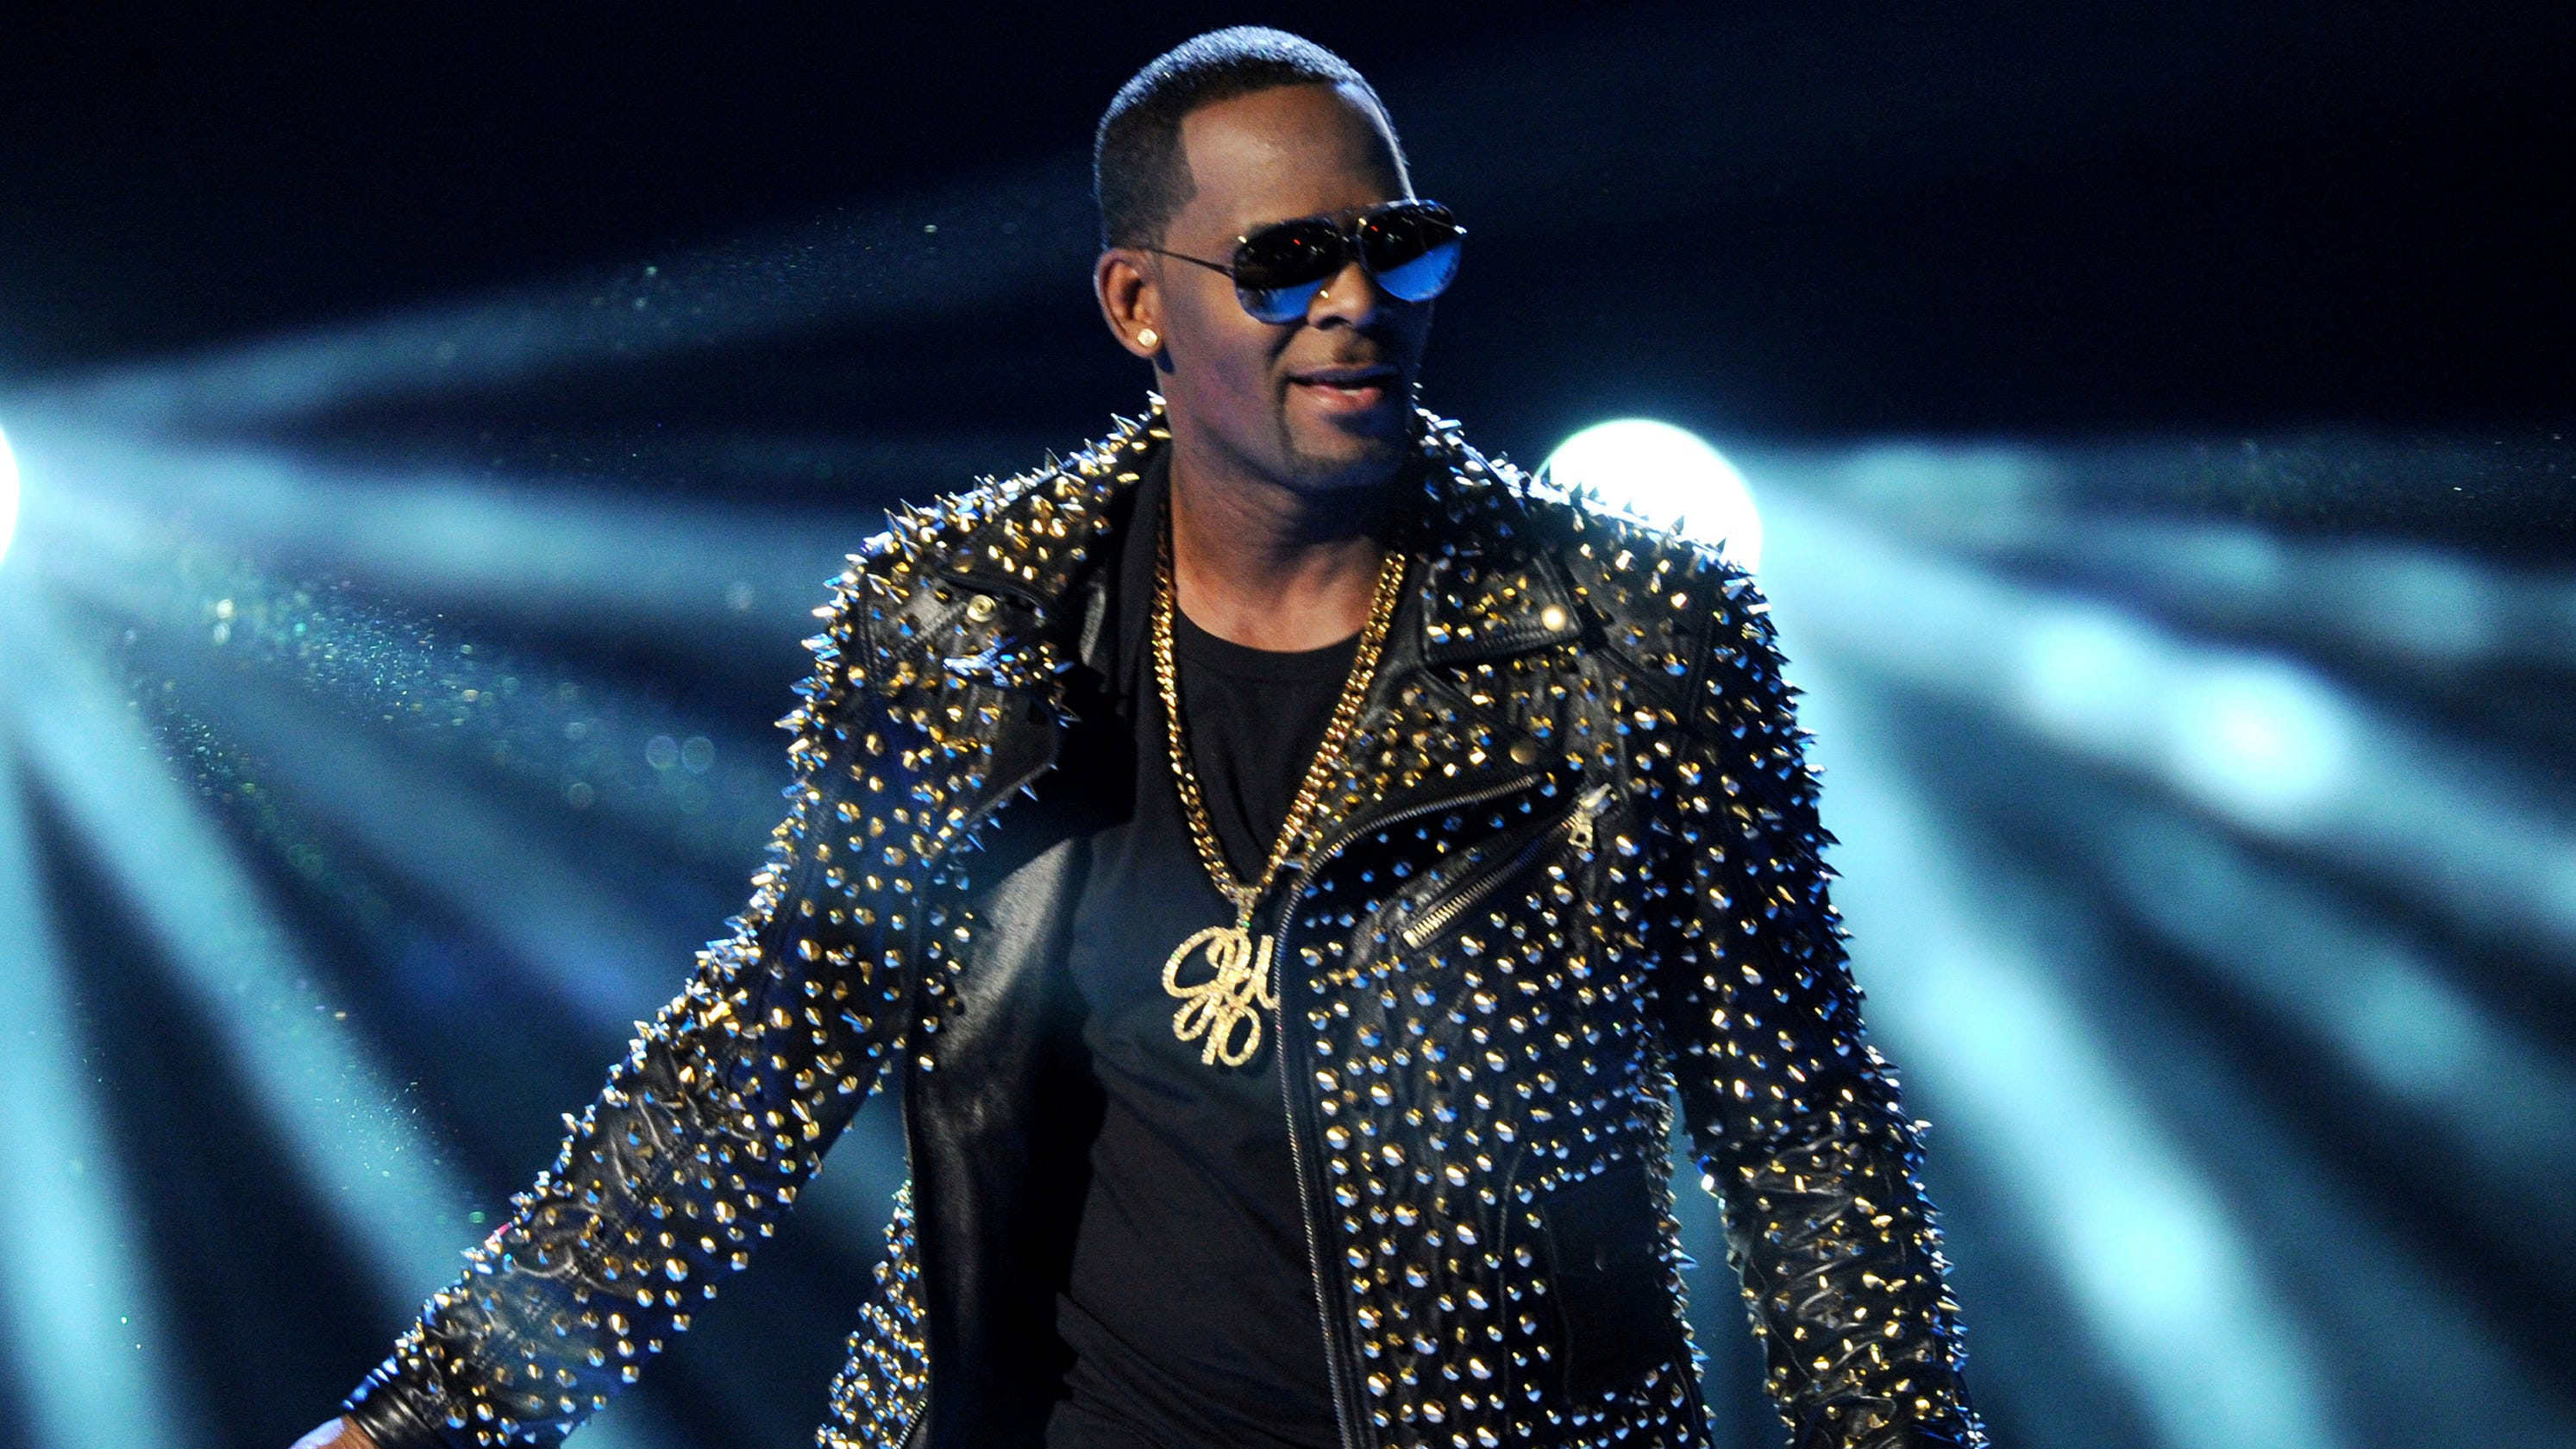 Pursuing R  Kelly: Could he end up convicted like Bill Cosby?